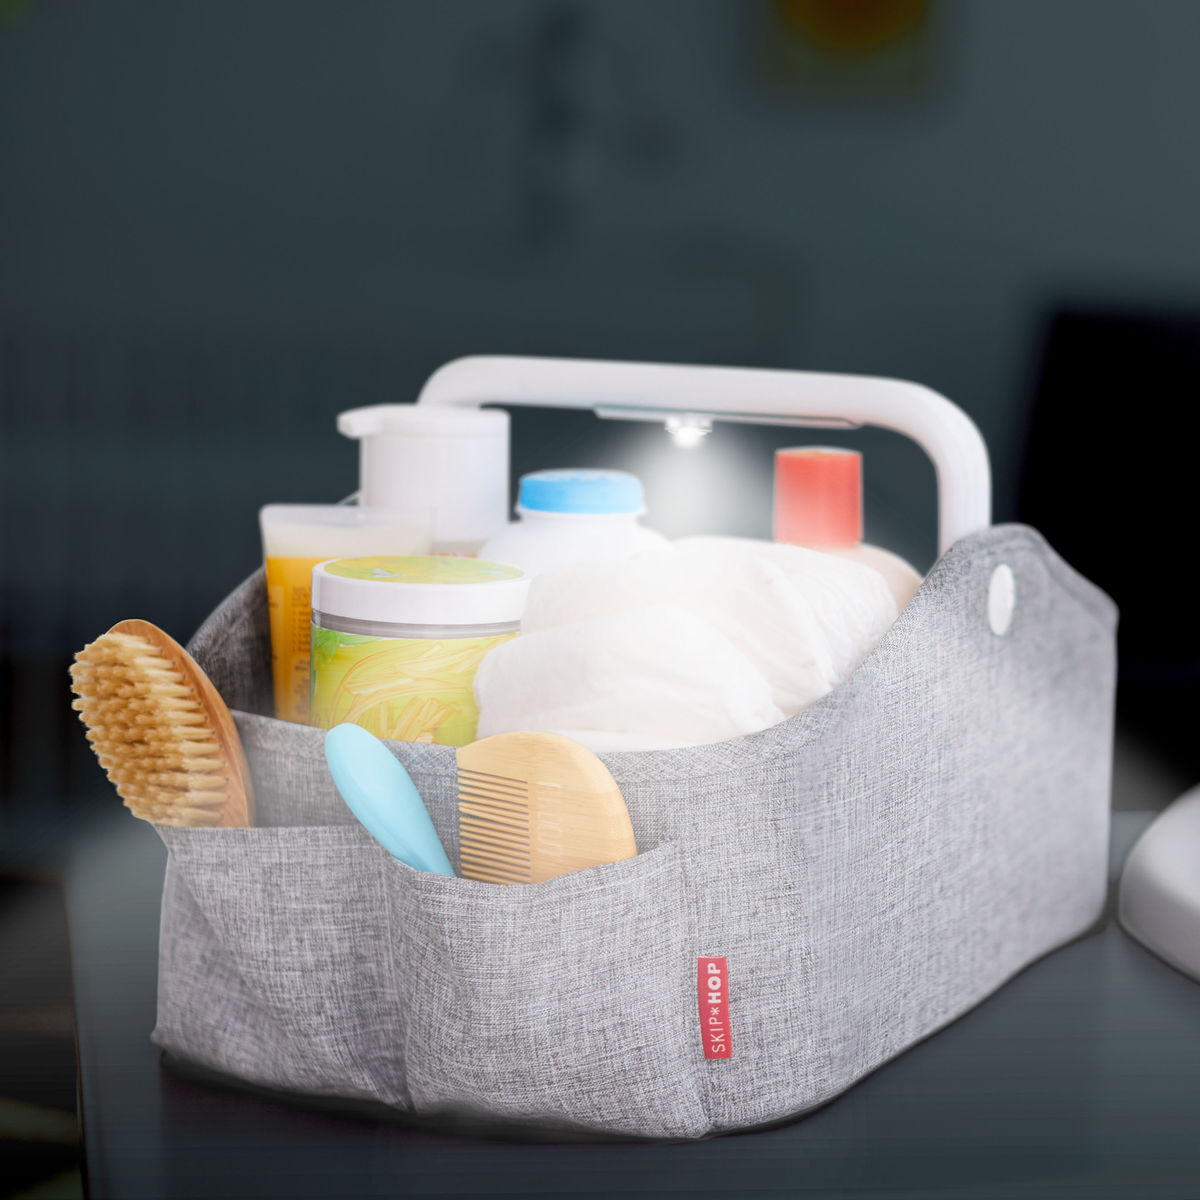 skip-hop-light-up-diaper-caddy.jpg